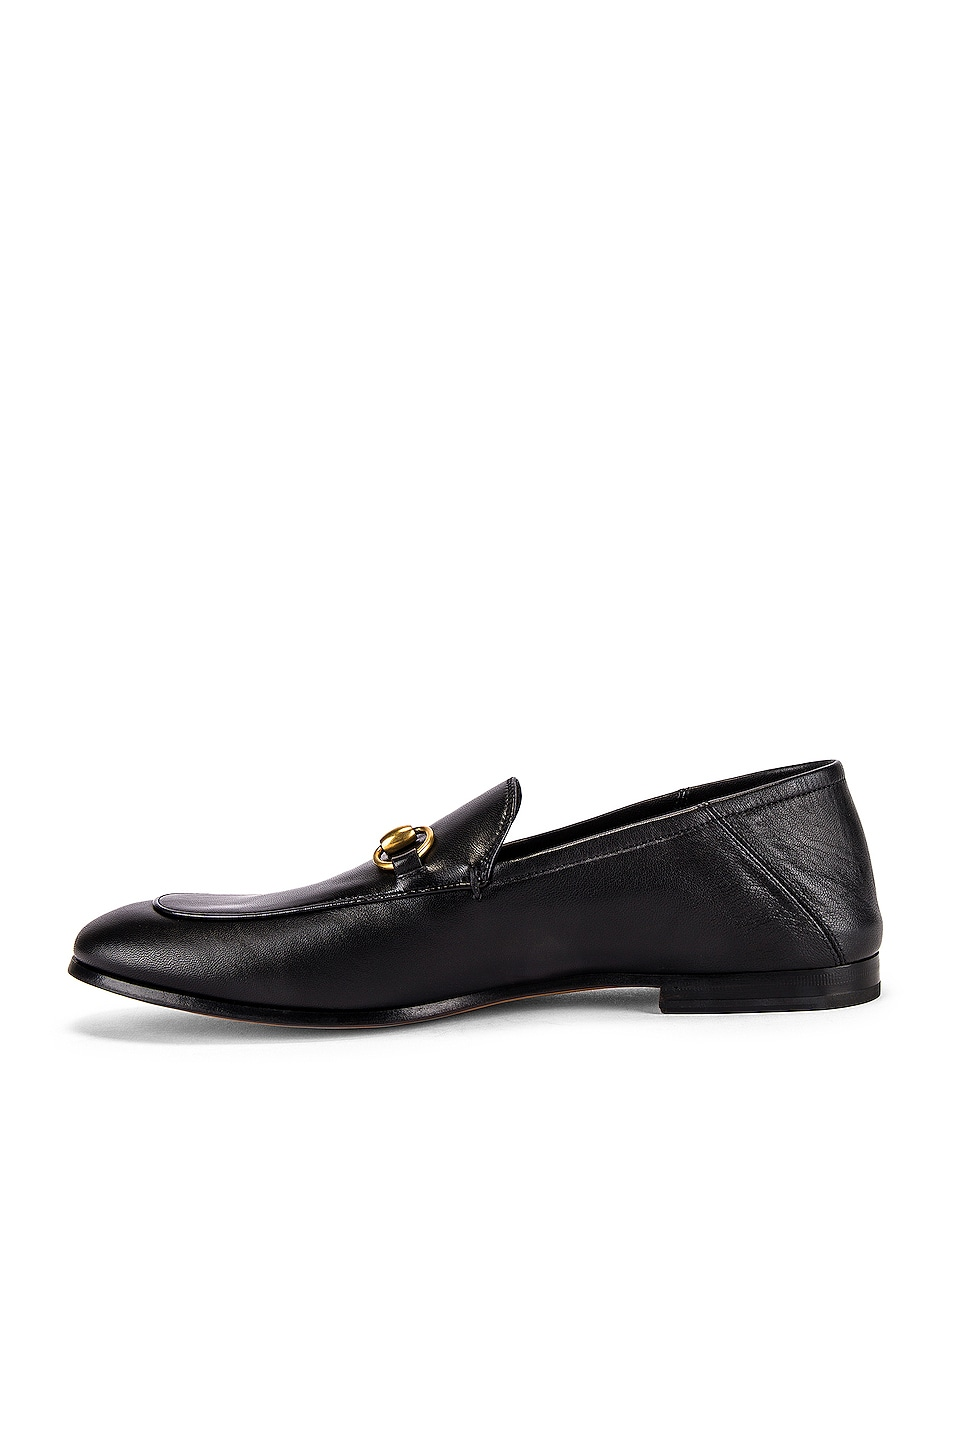 Image 5 of Gucci Ultrapace Loafer in Nero